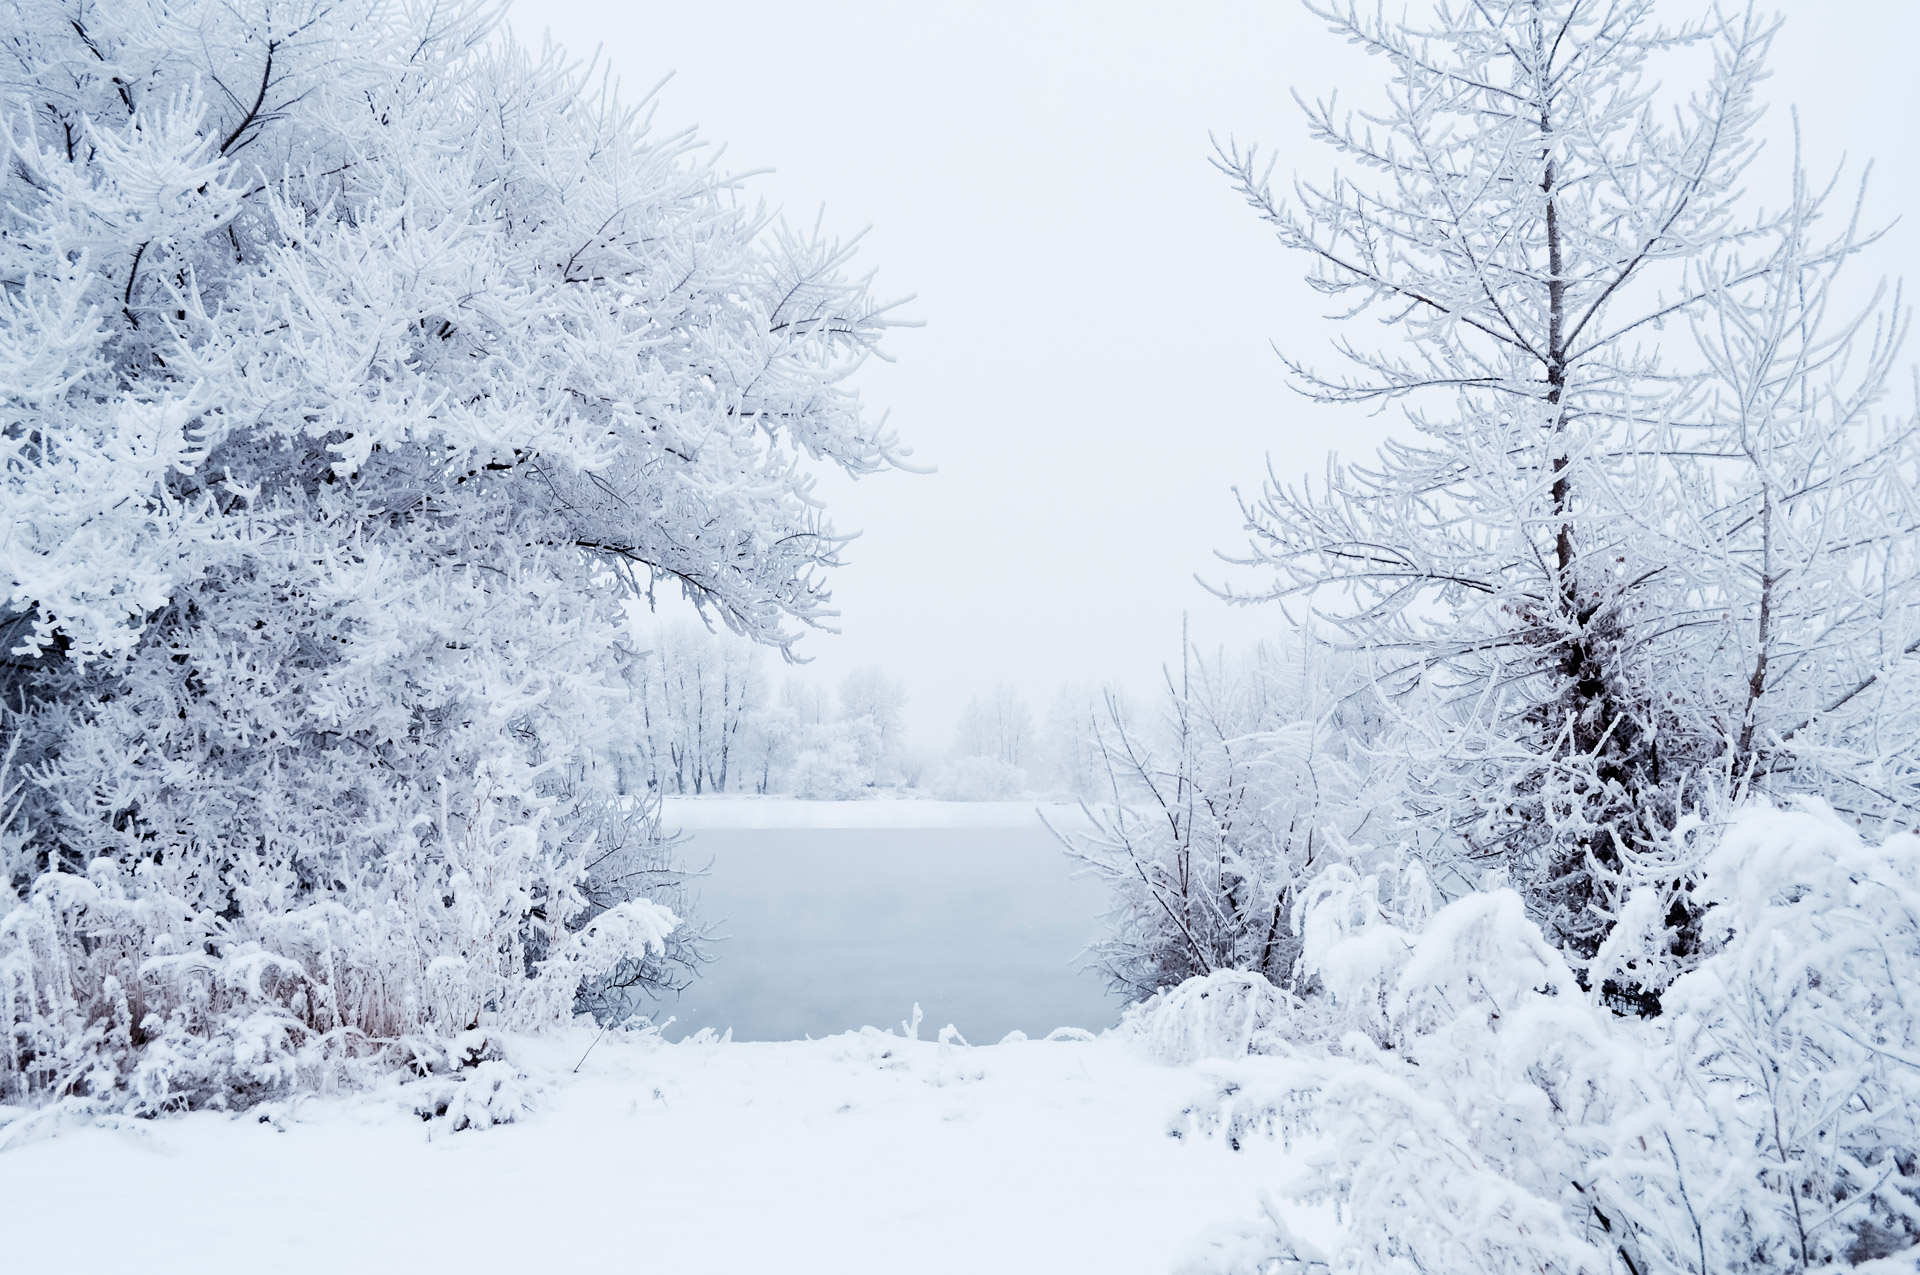 Wallpaper Phone Falling Snowflakes This Winter Free Stock Photo Public Domain Pictures